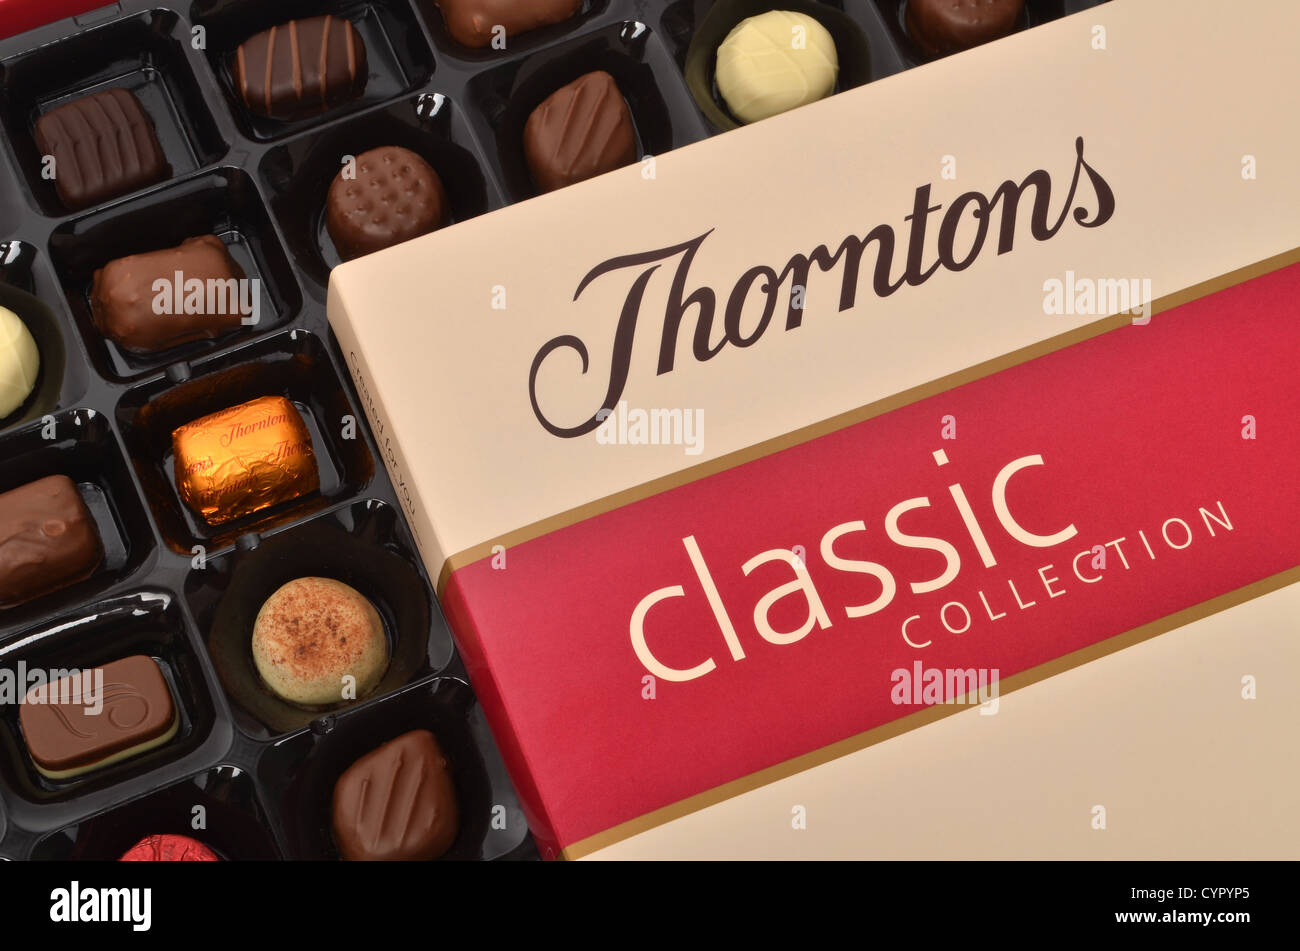 Box of chocolates - Thorntons Classic Collection - Stock Image